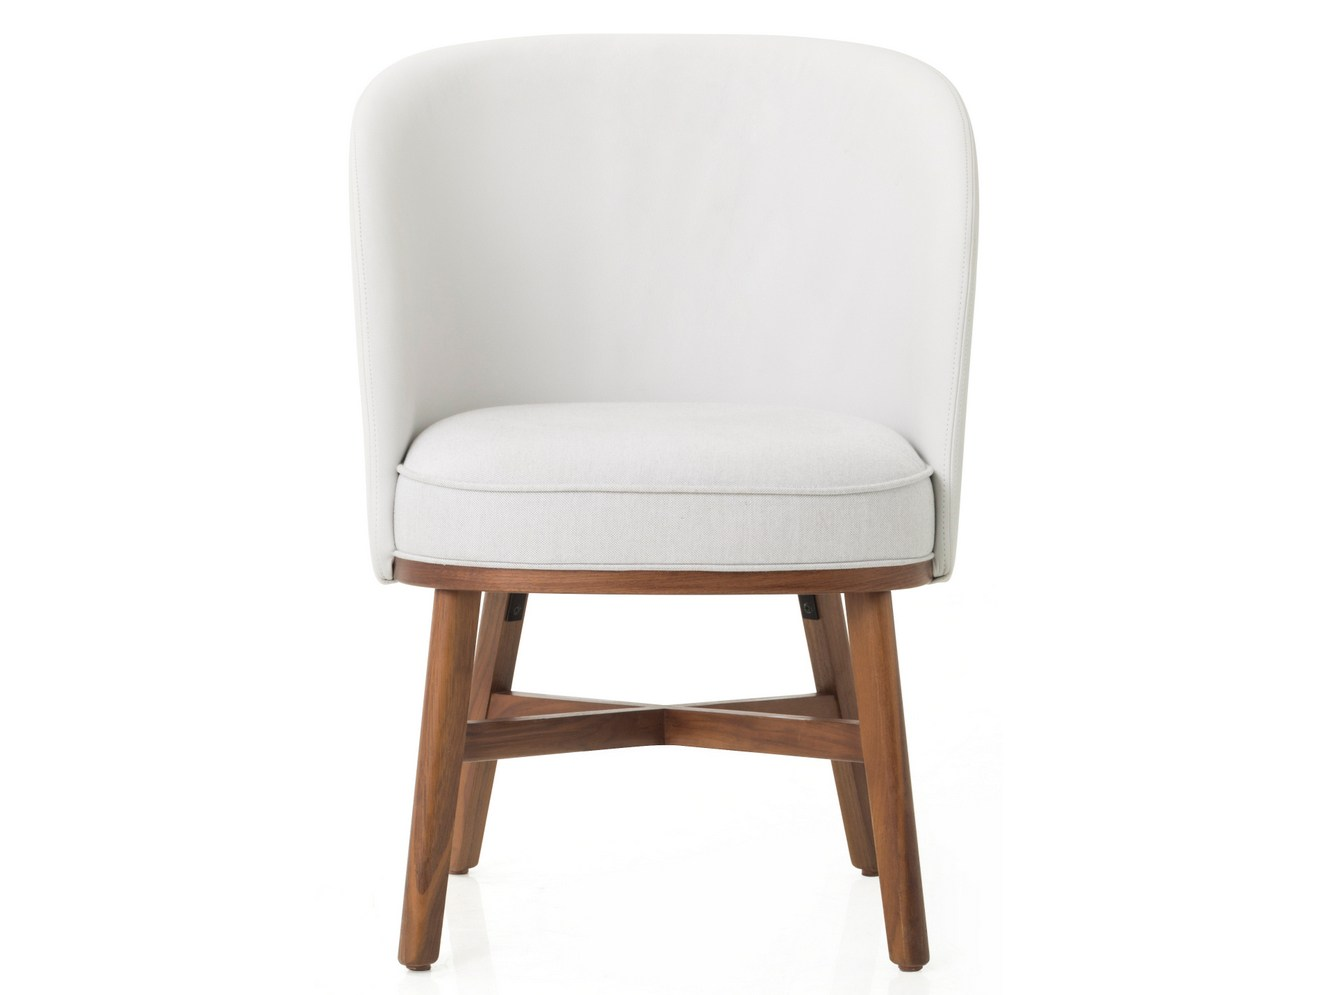 chair design research buy spandex covers uk dining bund collection by stellar